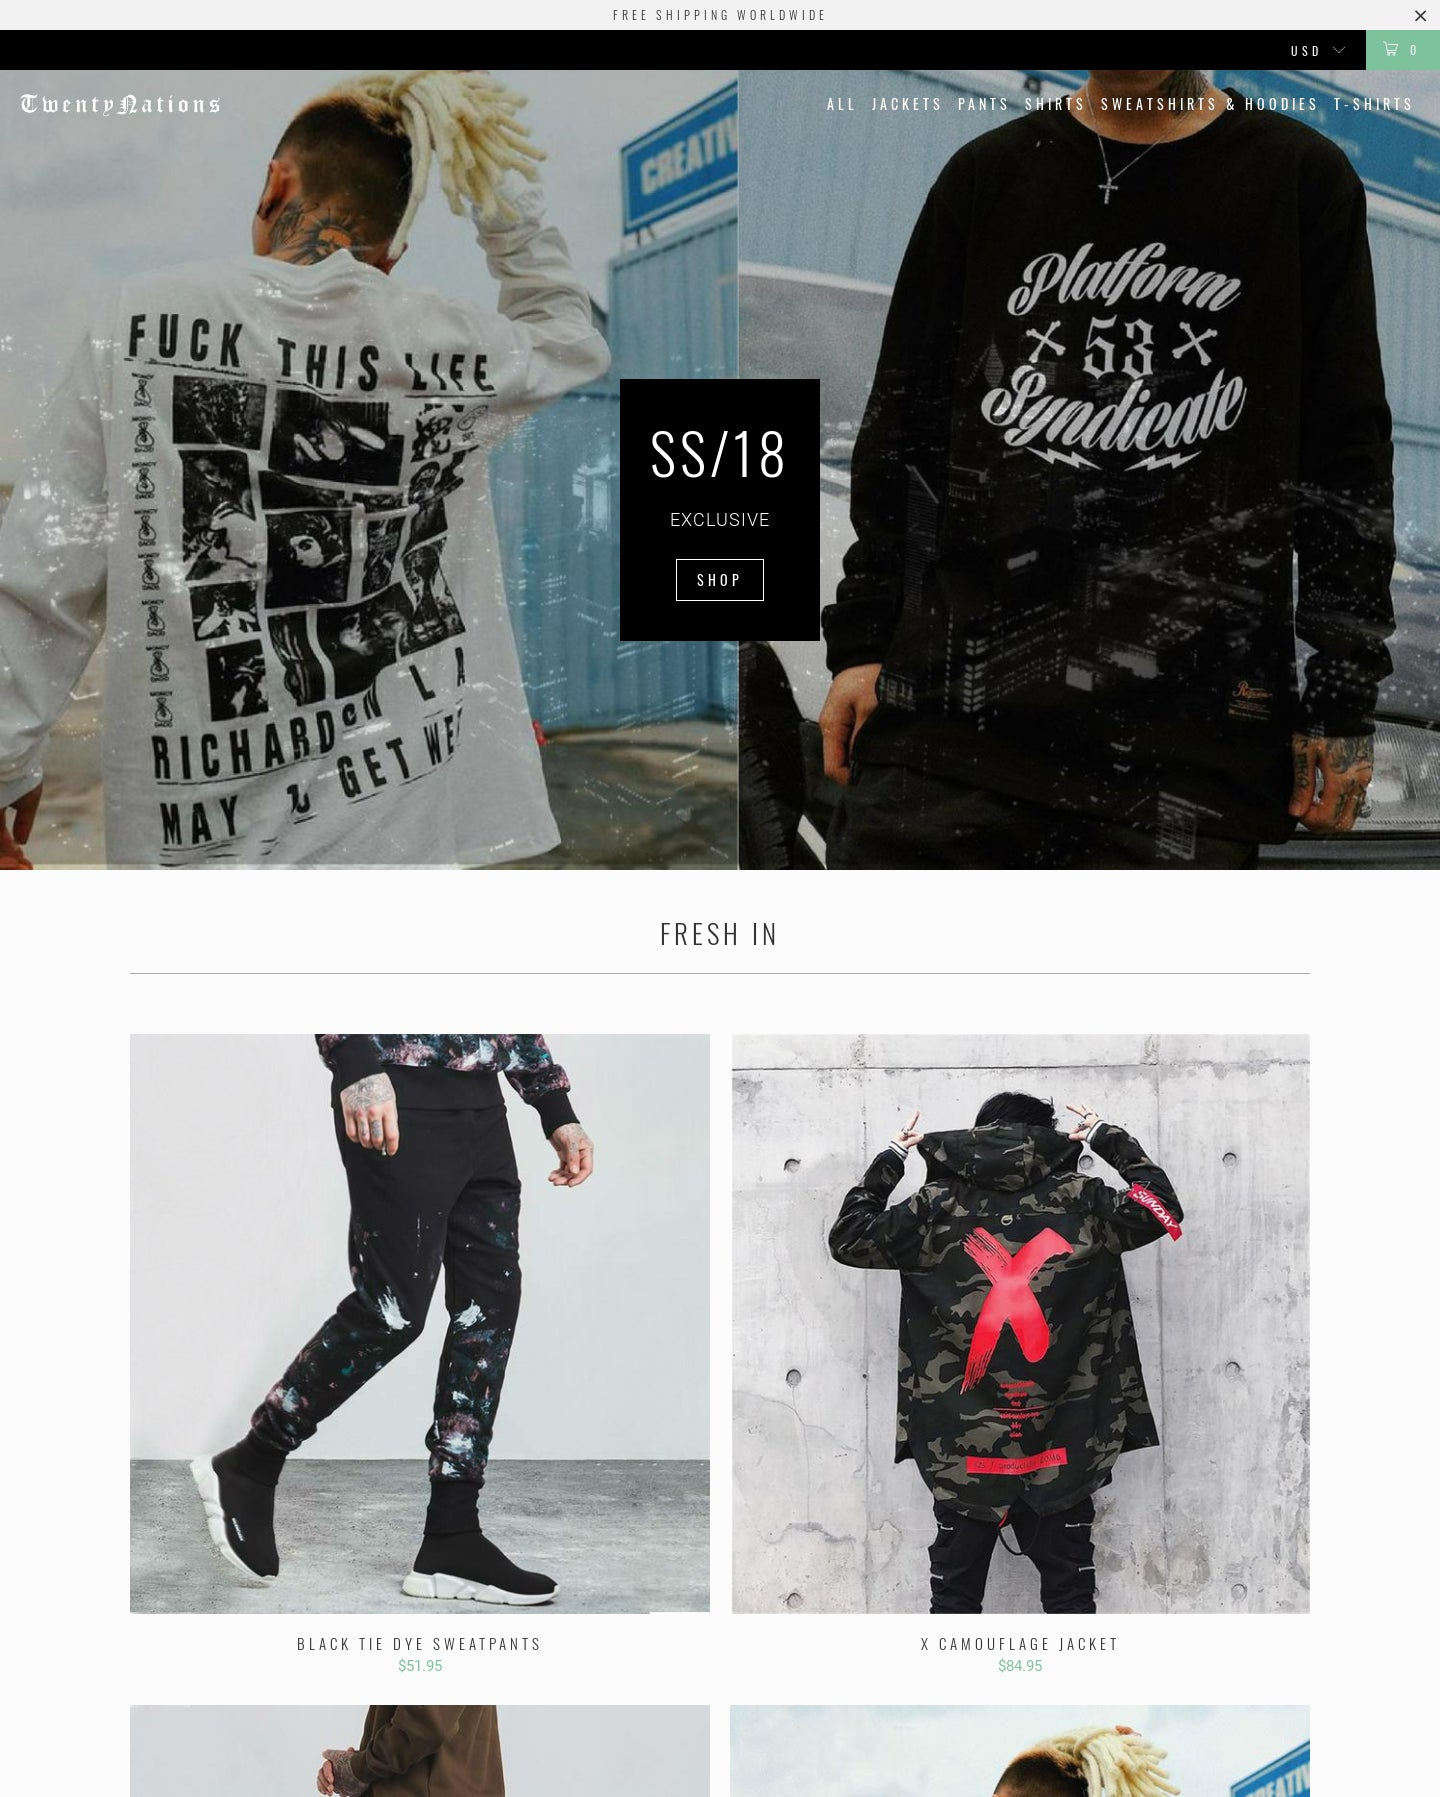 Men's Streetwear Fashion Dropship Store - Twenty Nations Screenshot - 1